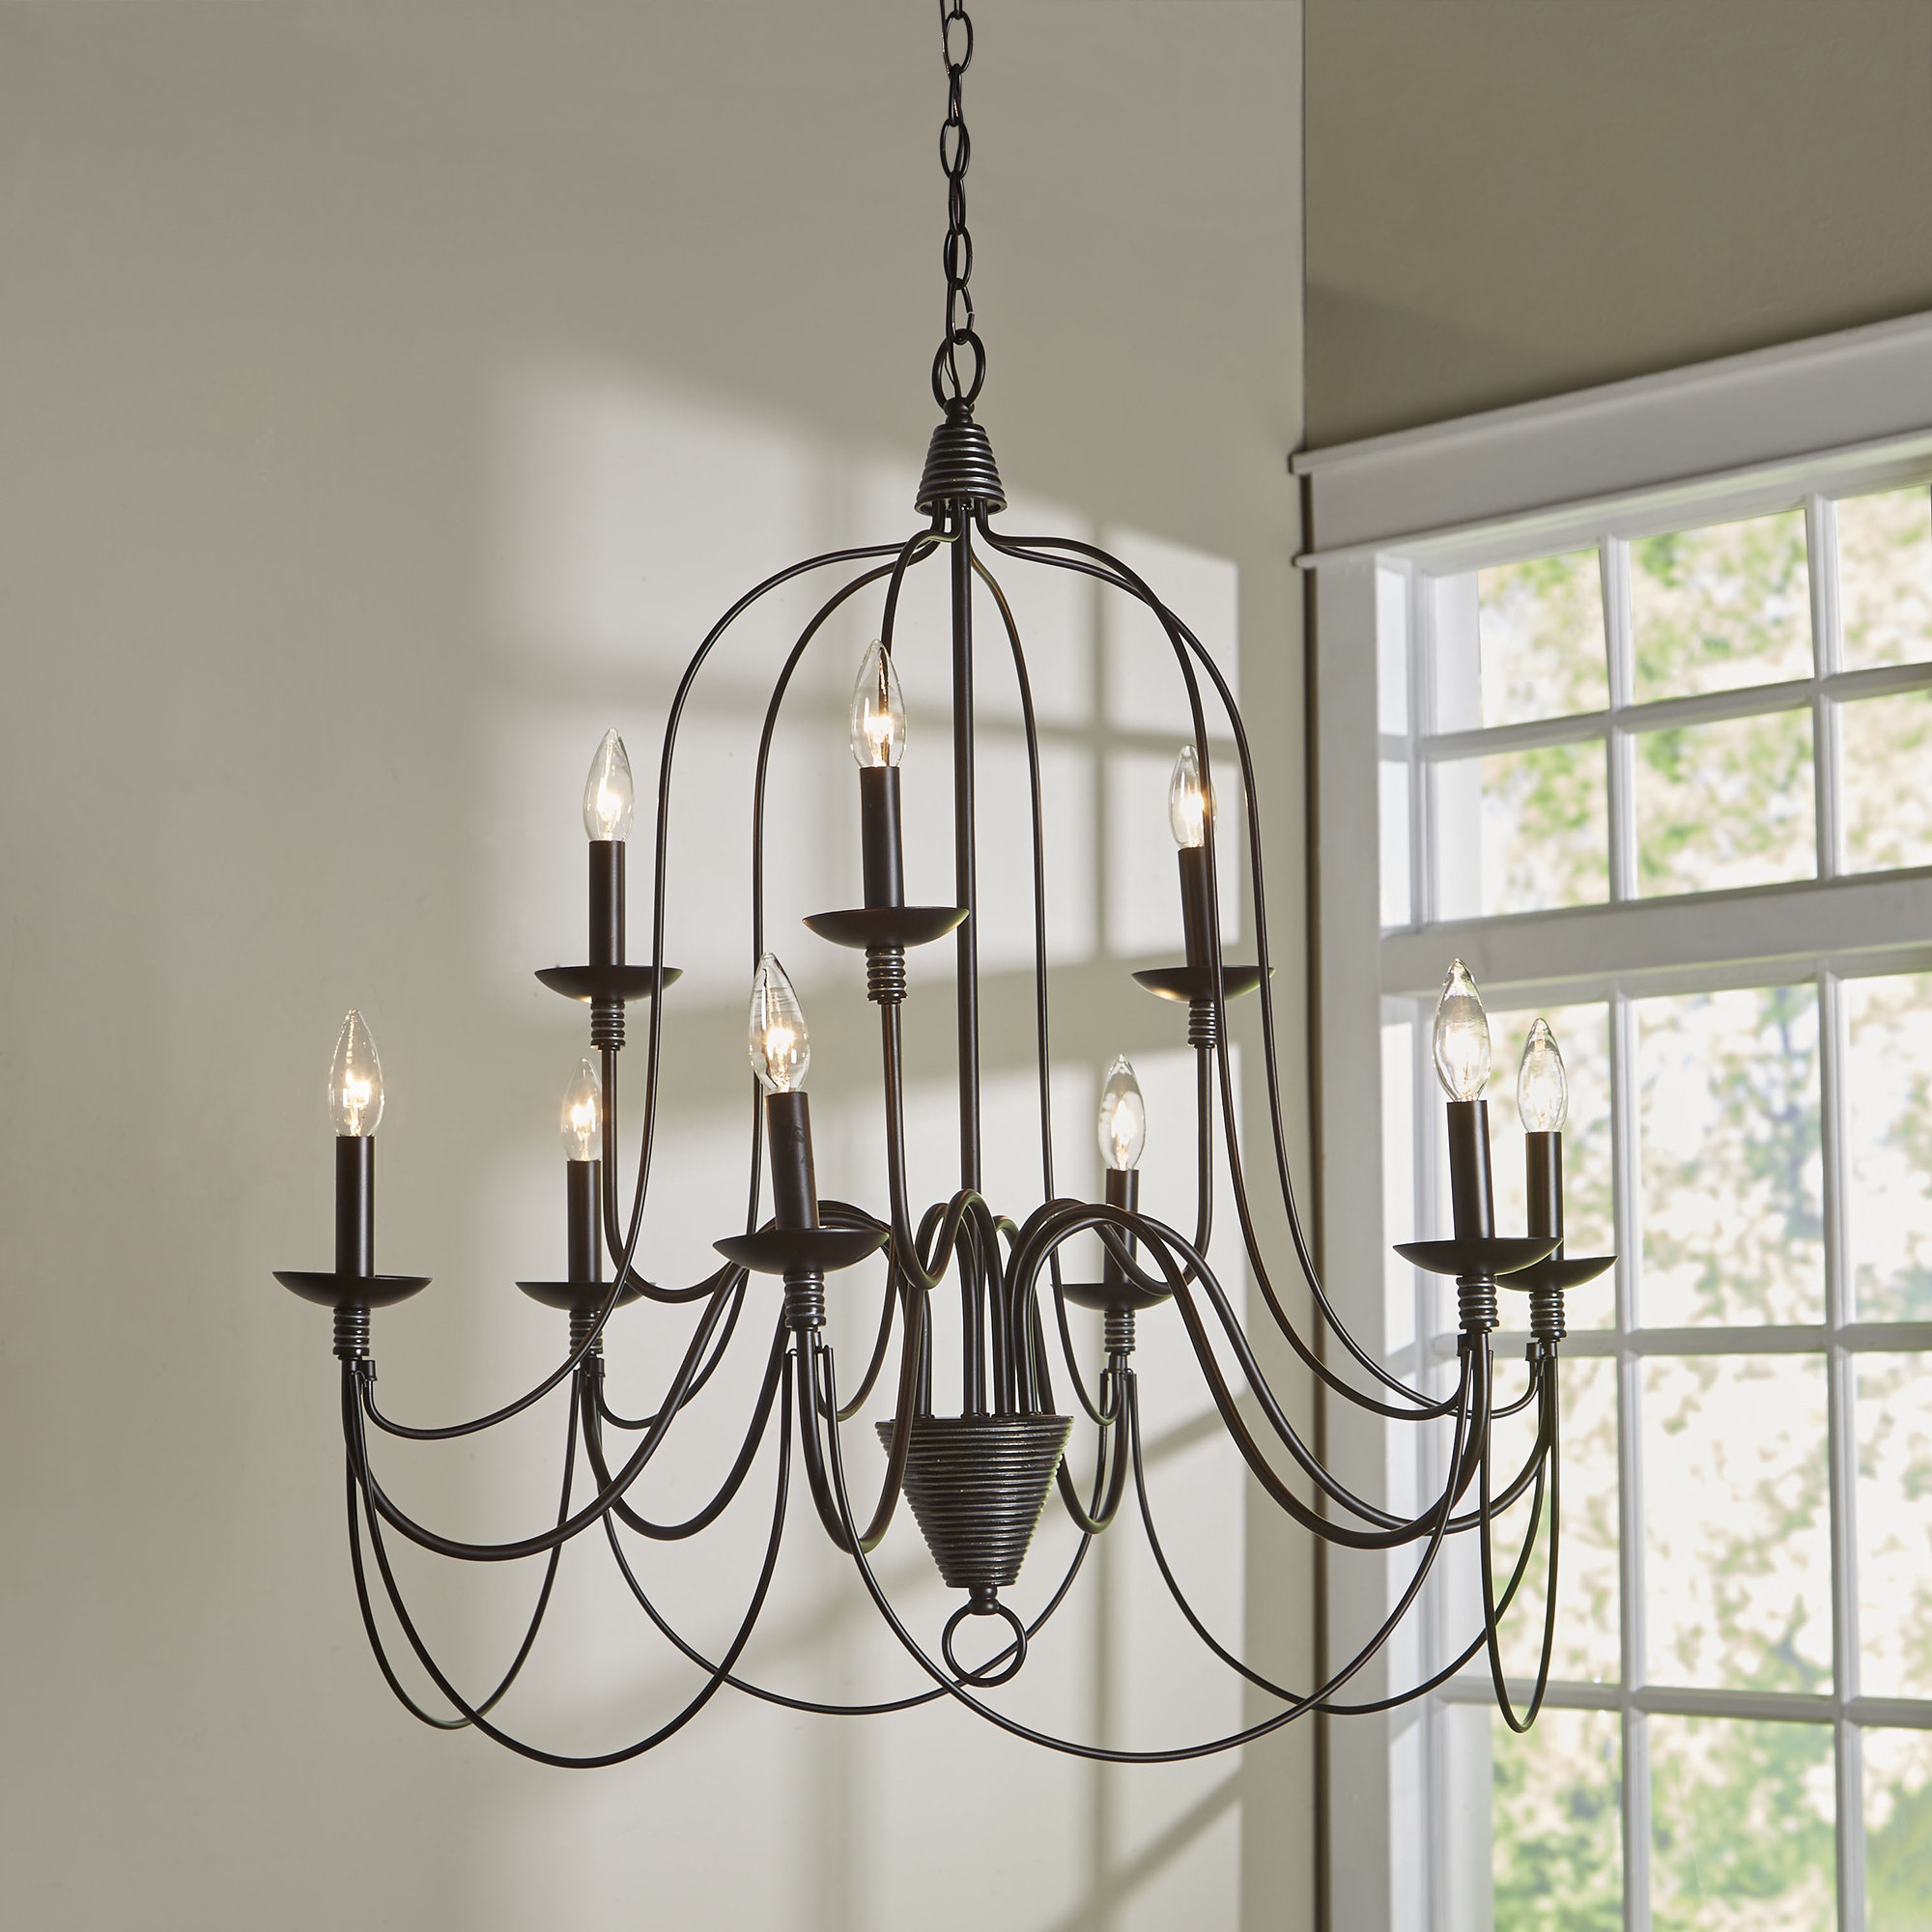 Diaz 6-Light Candle Style Chandeliers with Newest Watford 9-Light Candle Style Chandelier